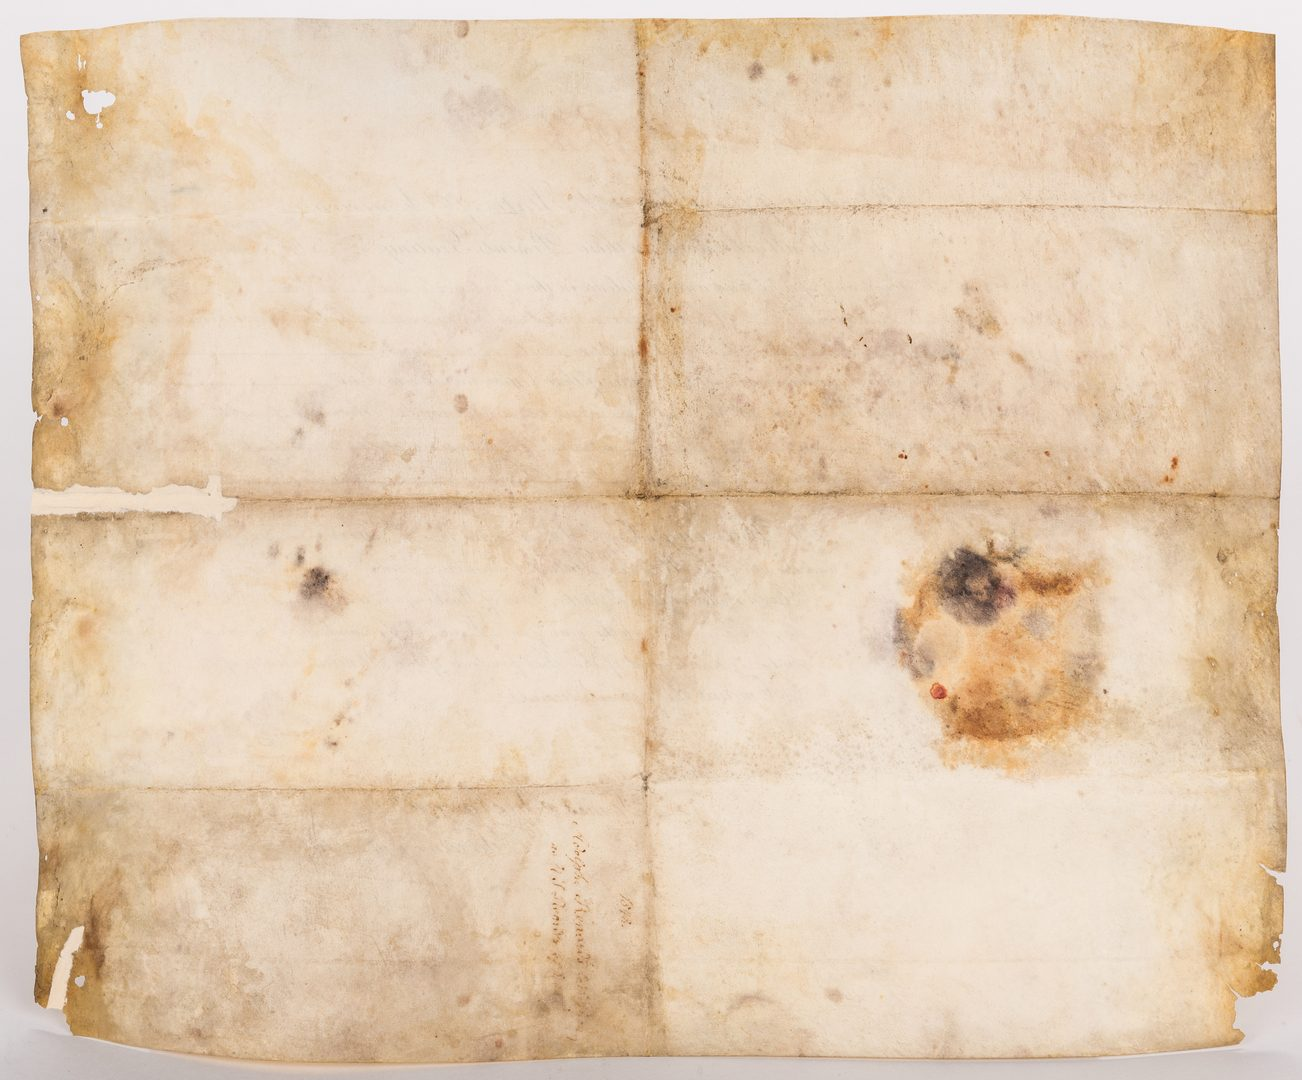 Lot 231: President Polk and Buchanan Signed Document, 1848